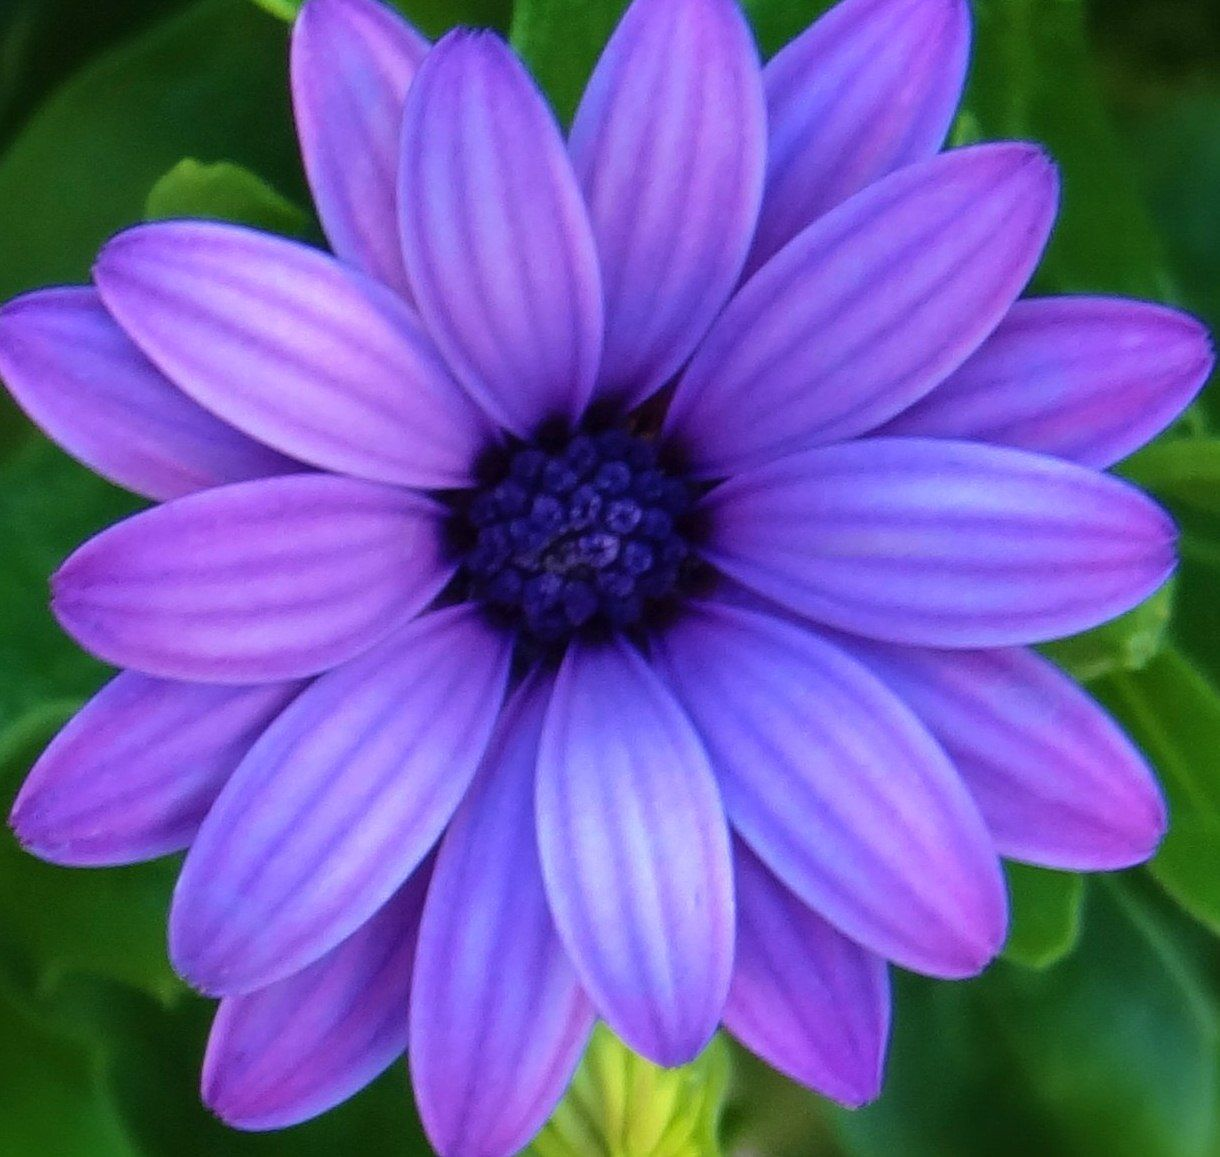 Purple daisy daisies pinterest purple flowers and flowers garden purple daisy izmirmasajfo